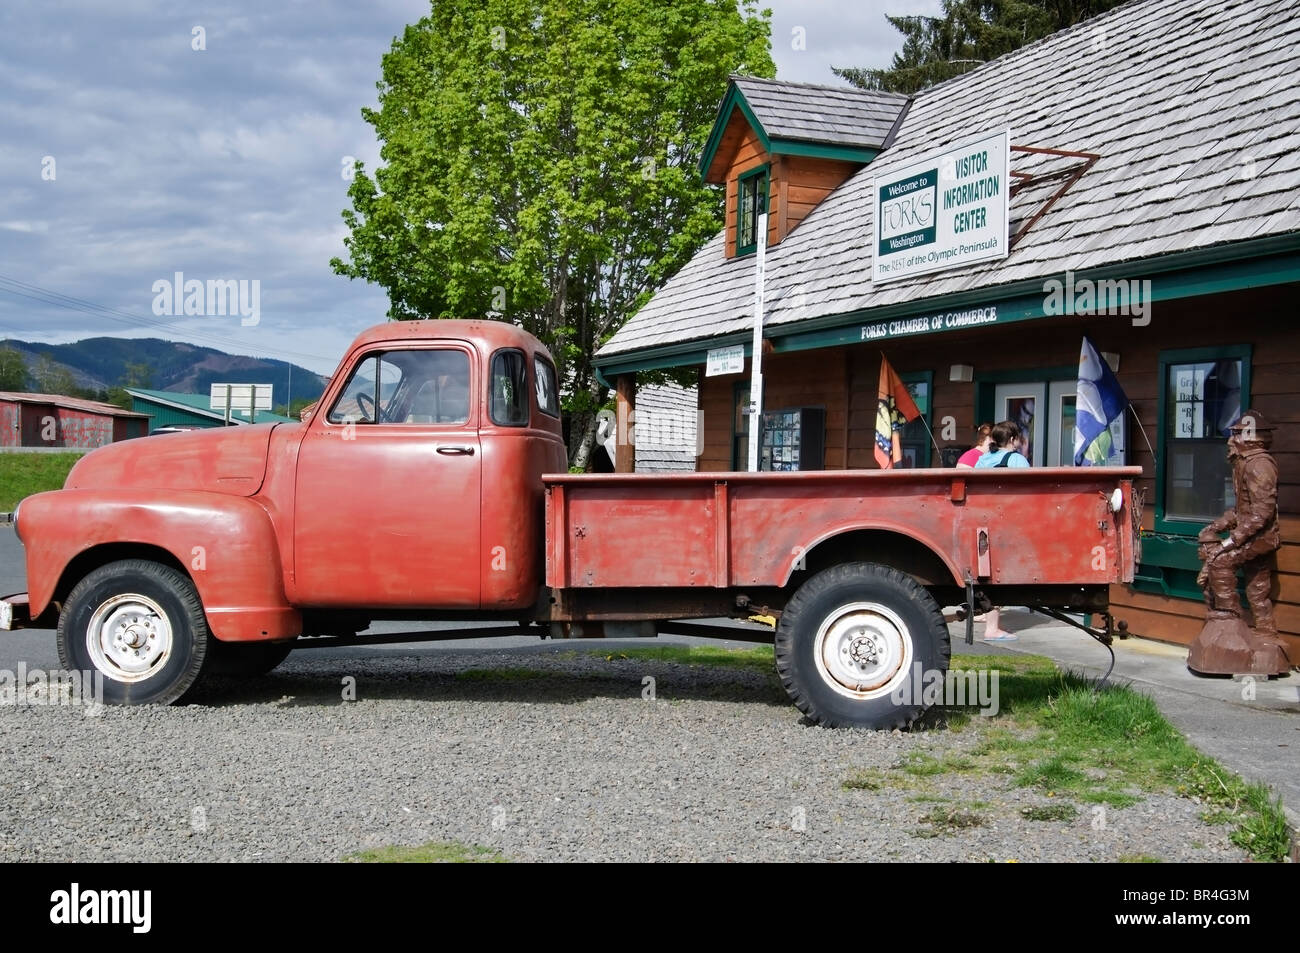 Bellas Red Truck From The Stephanie Meyers Twilight